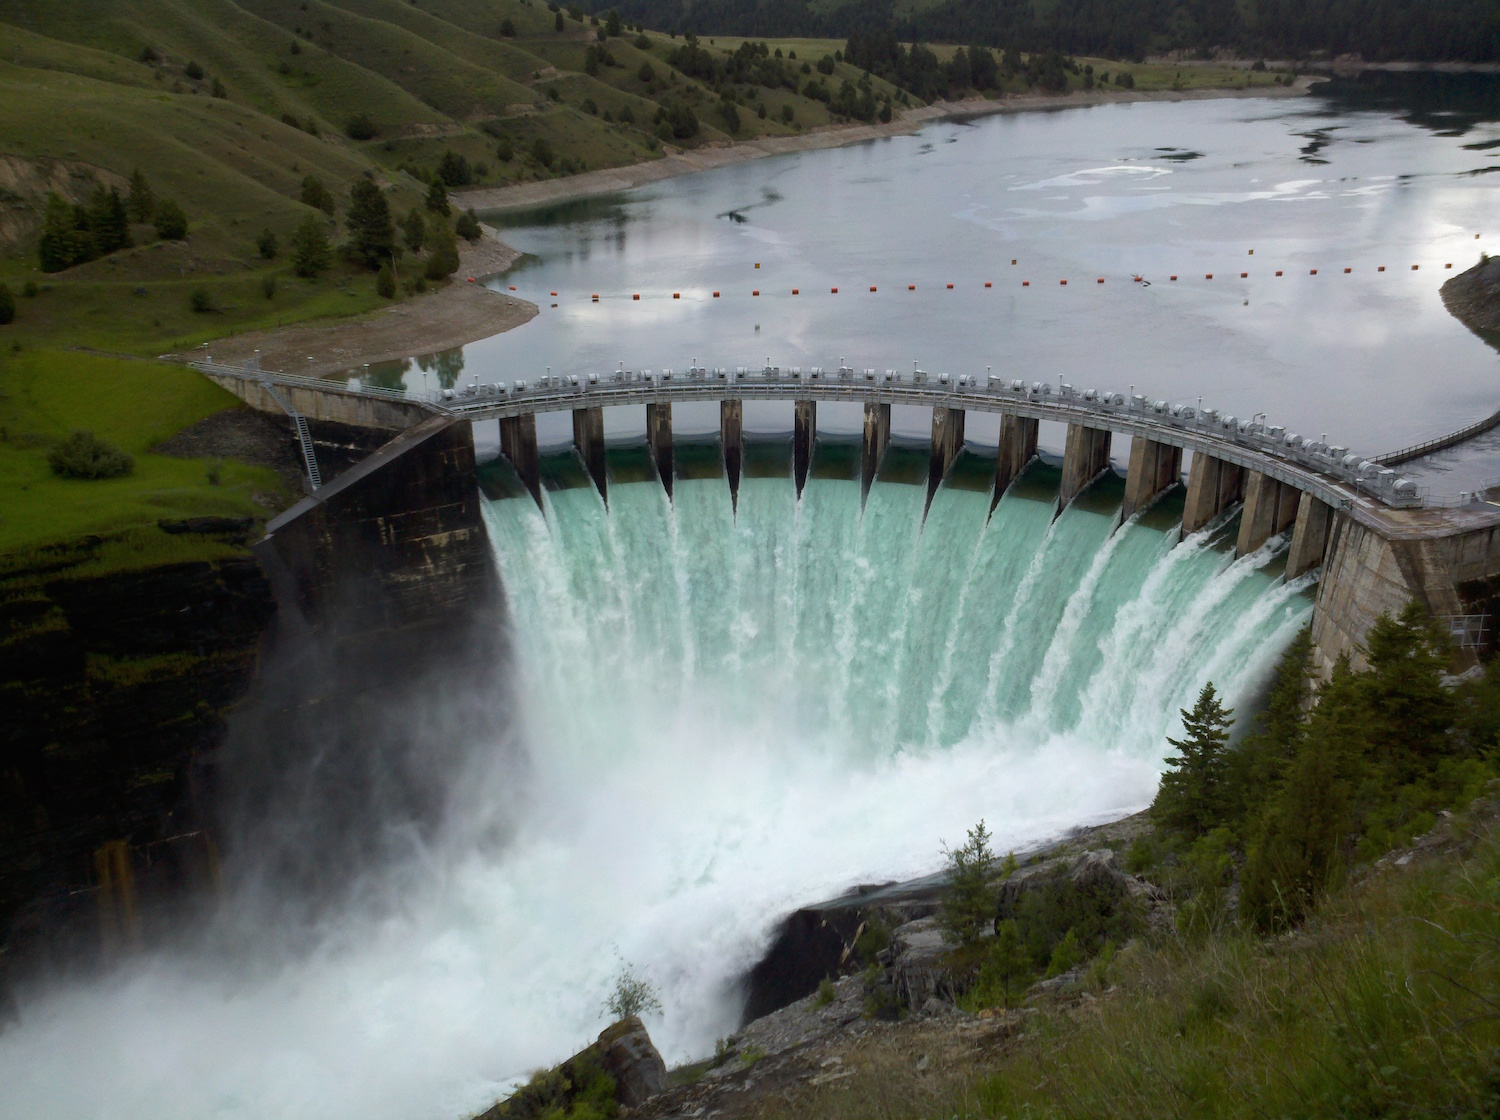 Montana tribe takes control of dam within reservation boundary